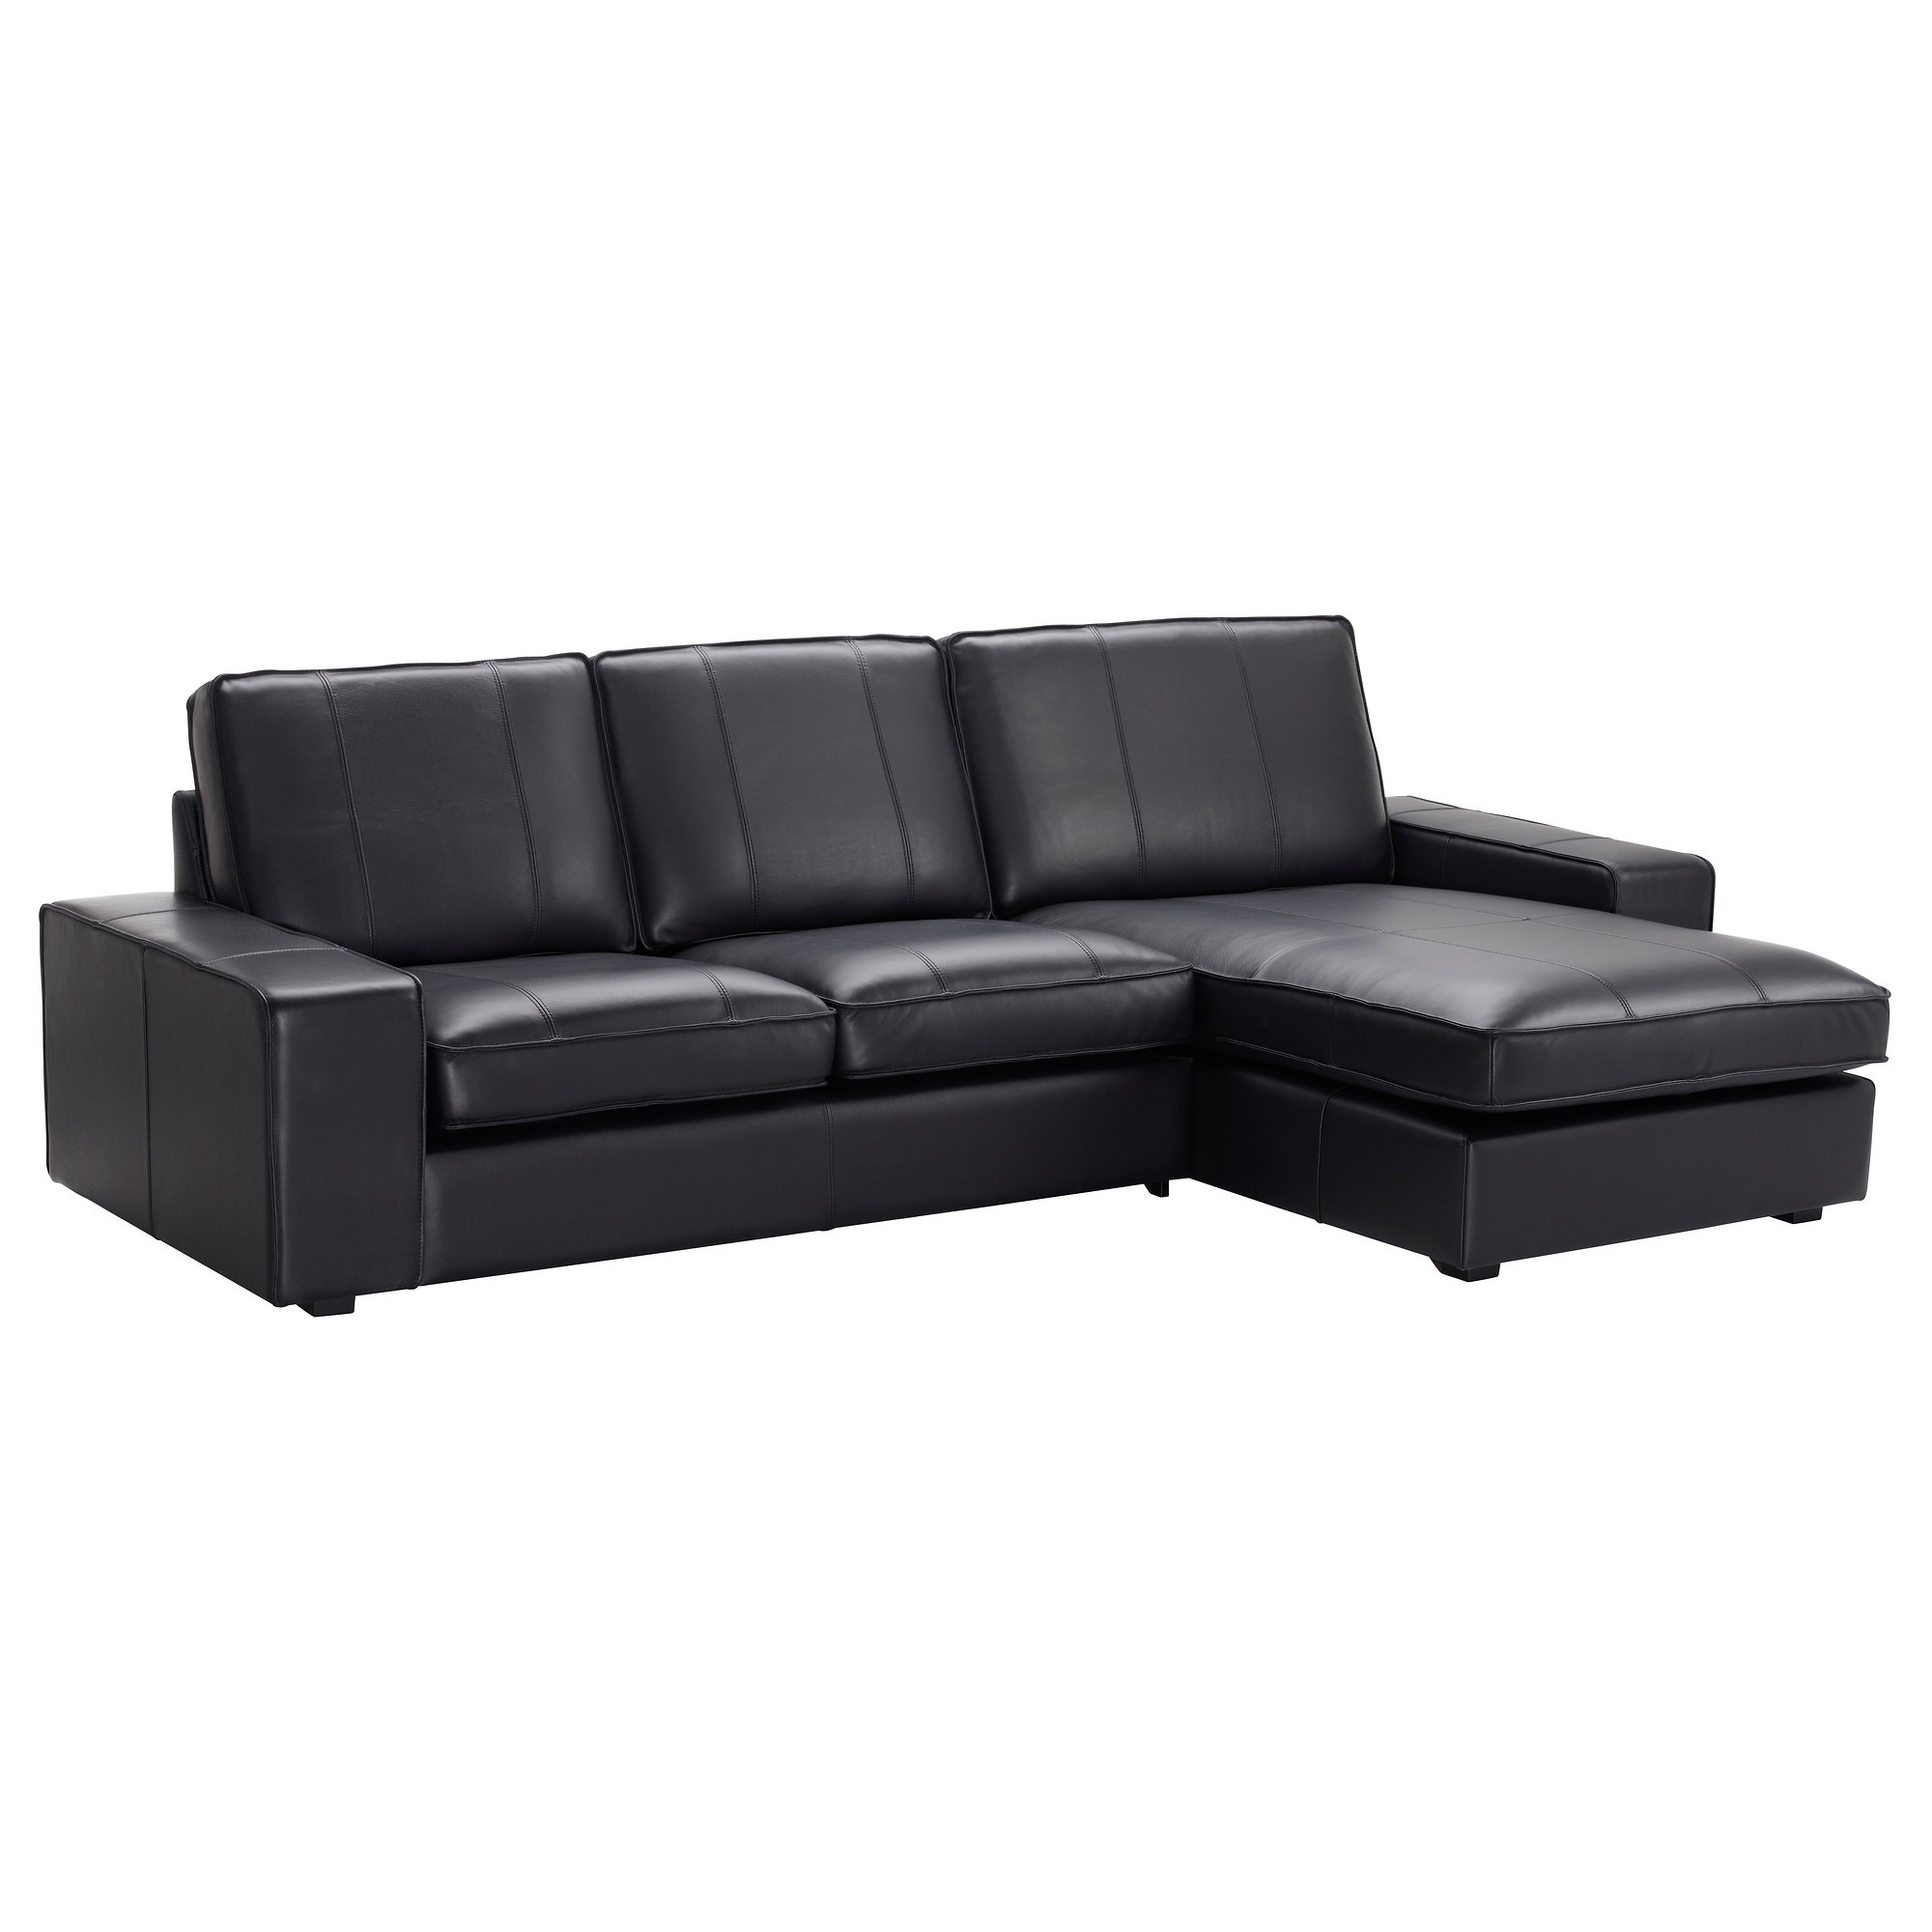 Canape cuir ikea 2 places canap id es de d coration for Canape ikea stockholm cuir